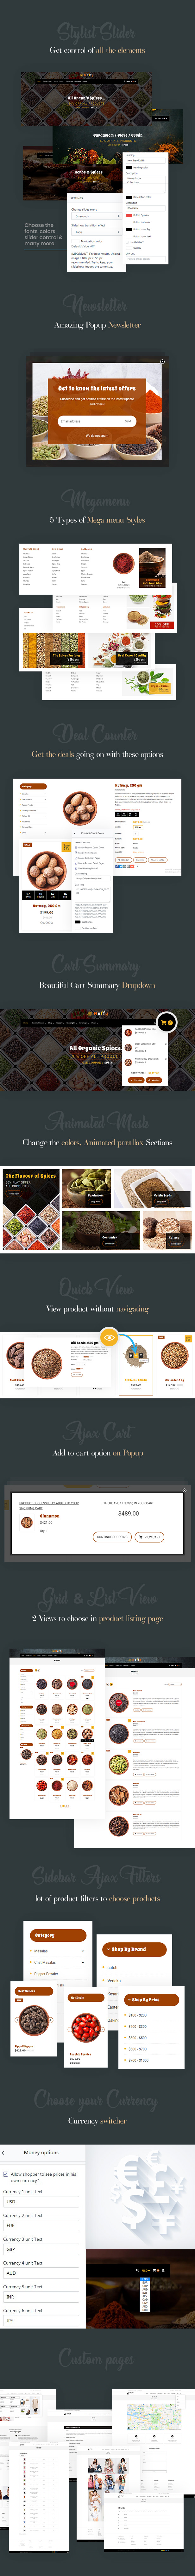 Waffy | Spices, Dry Fruits Store Shopify Theme - 3